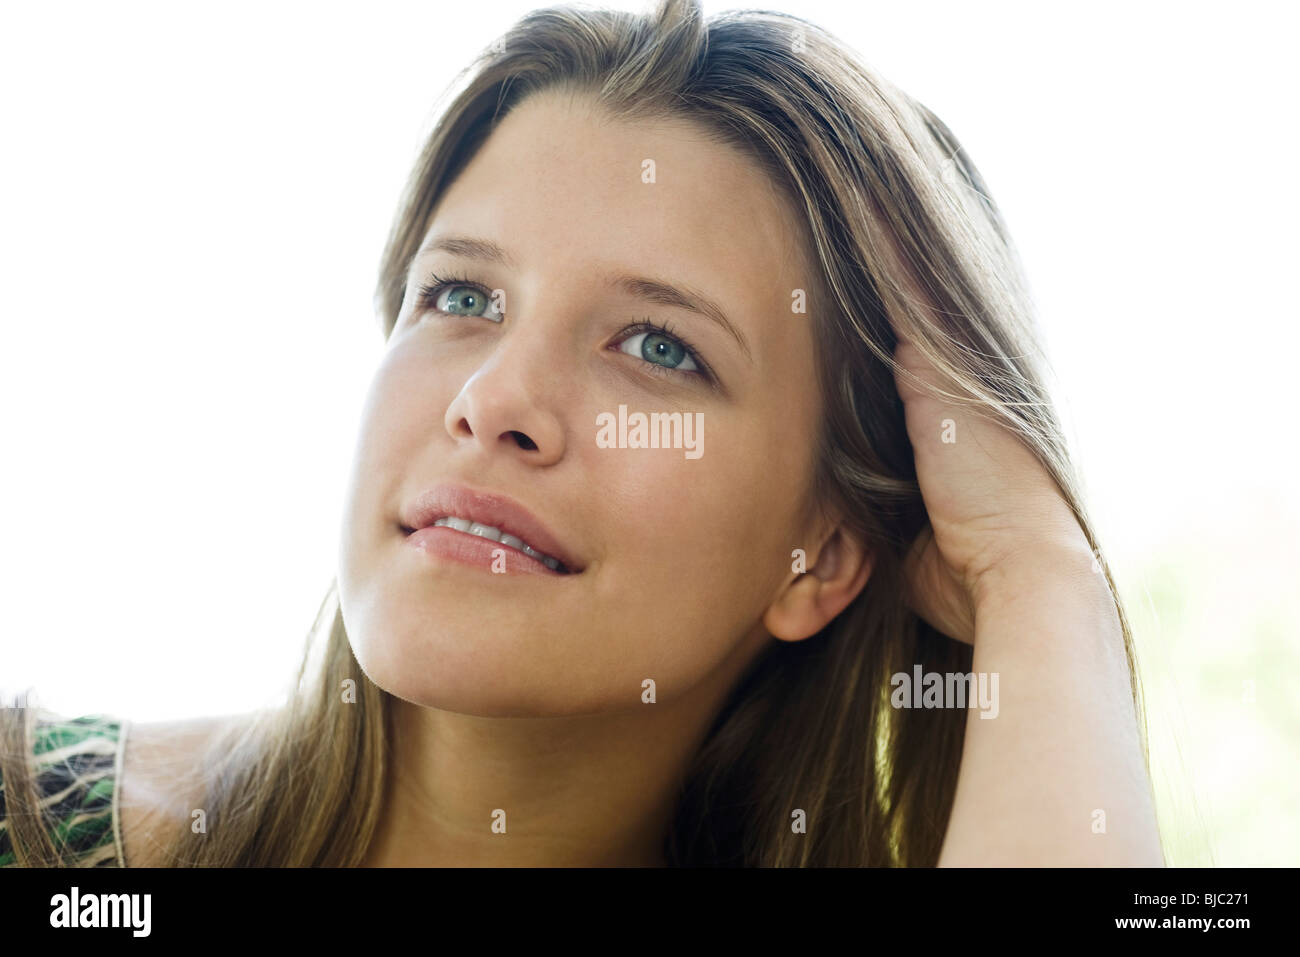 Young woman, portrait - Stock Image